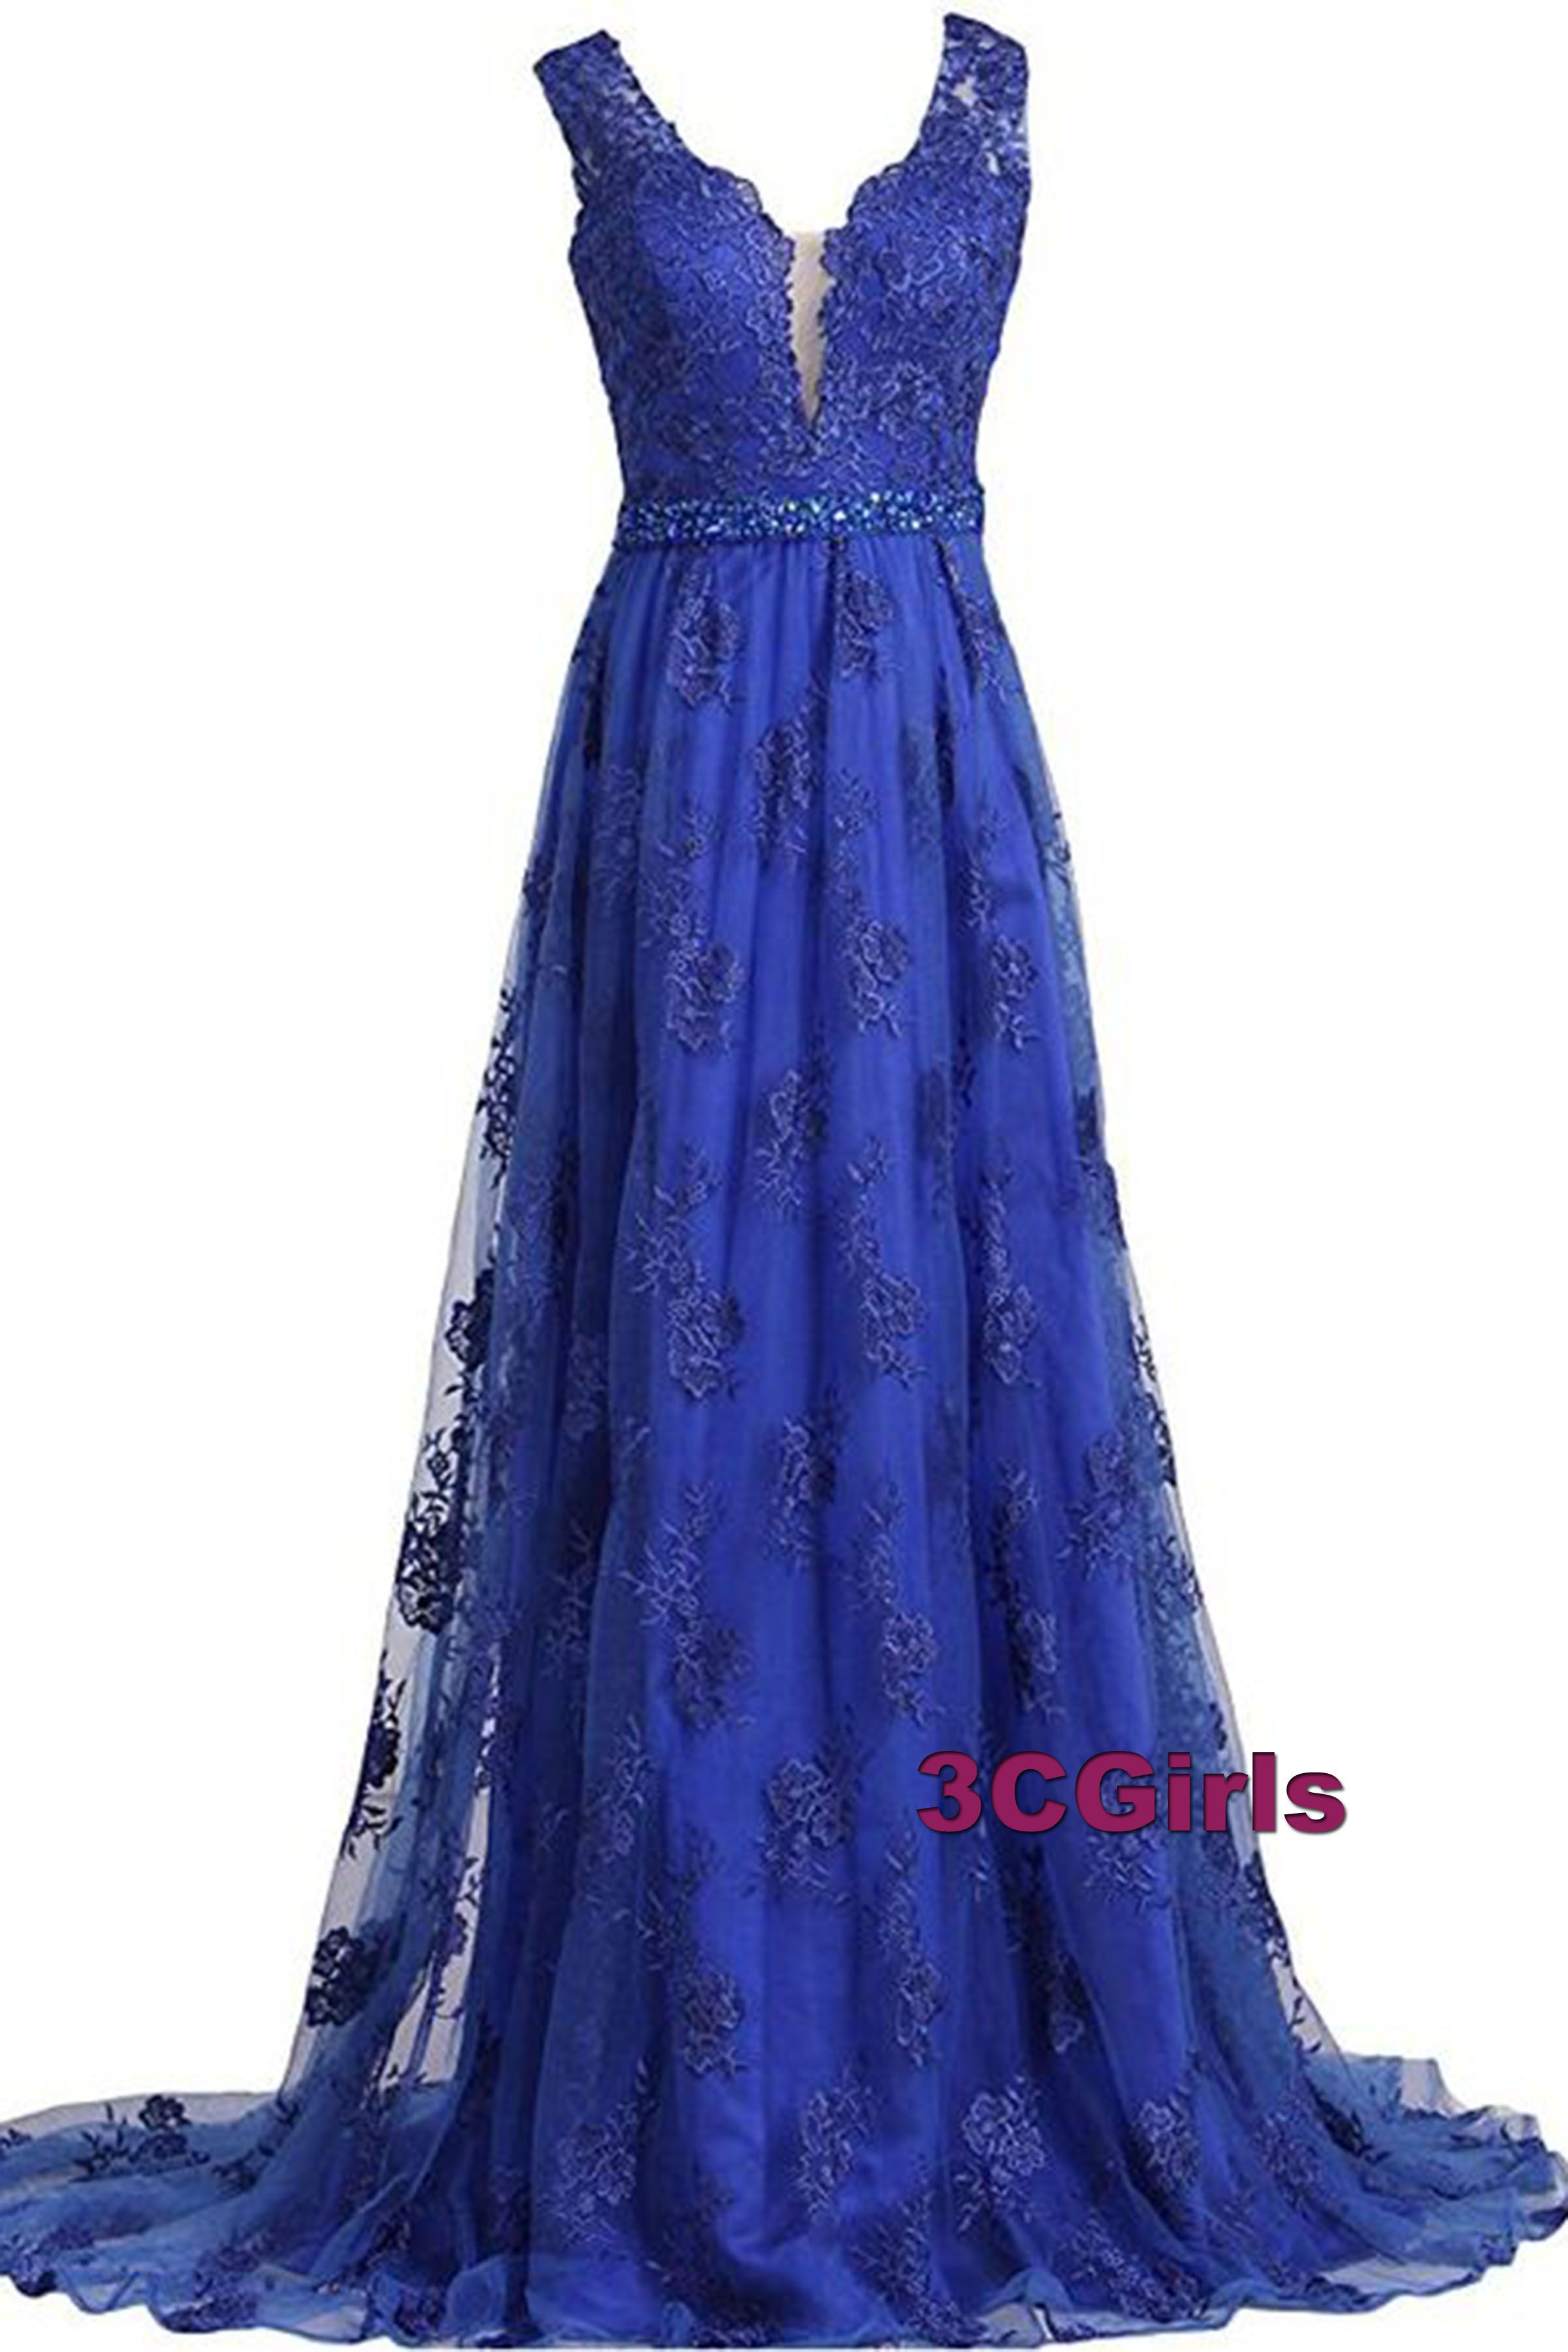 Royal blue lace prom dress ball gown prom dresses vintage